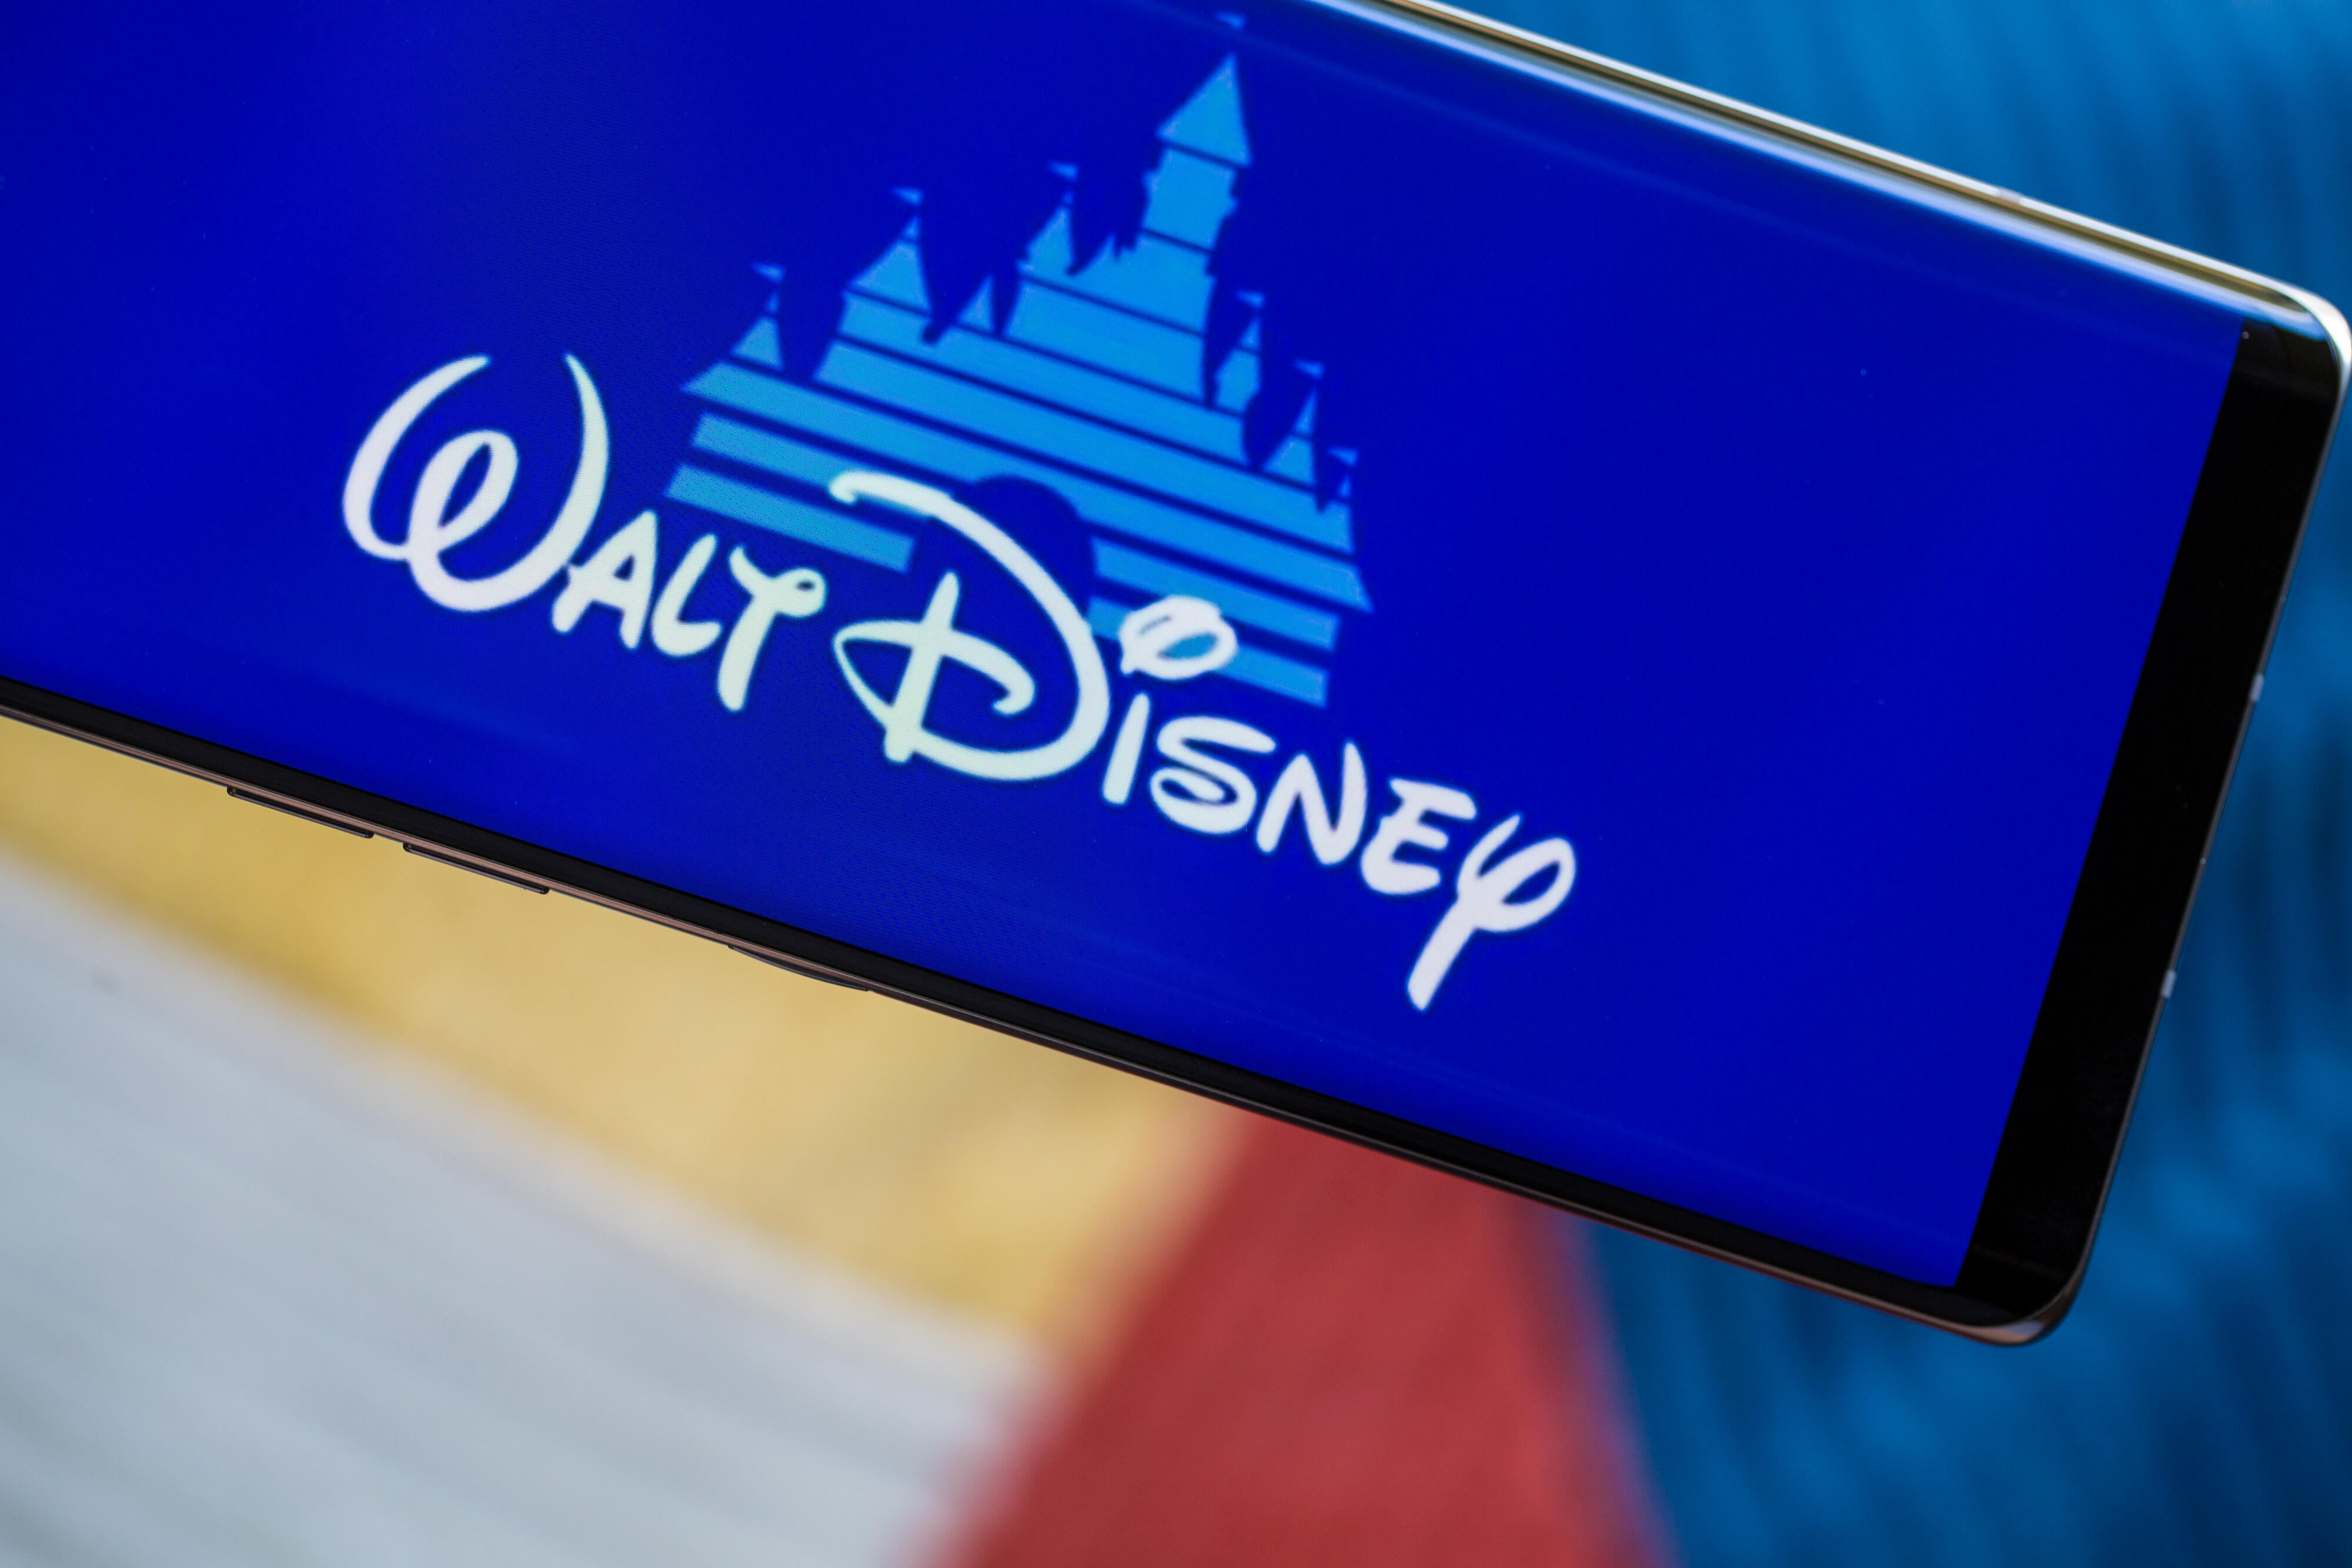 Disney Plus will have 10 Marvel series, 10 Star Wars series 'over the next few years'